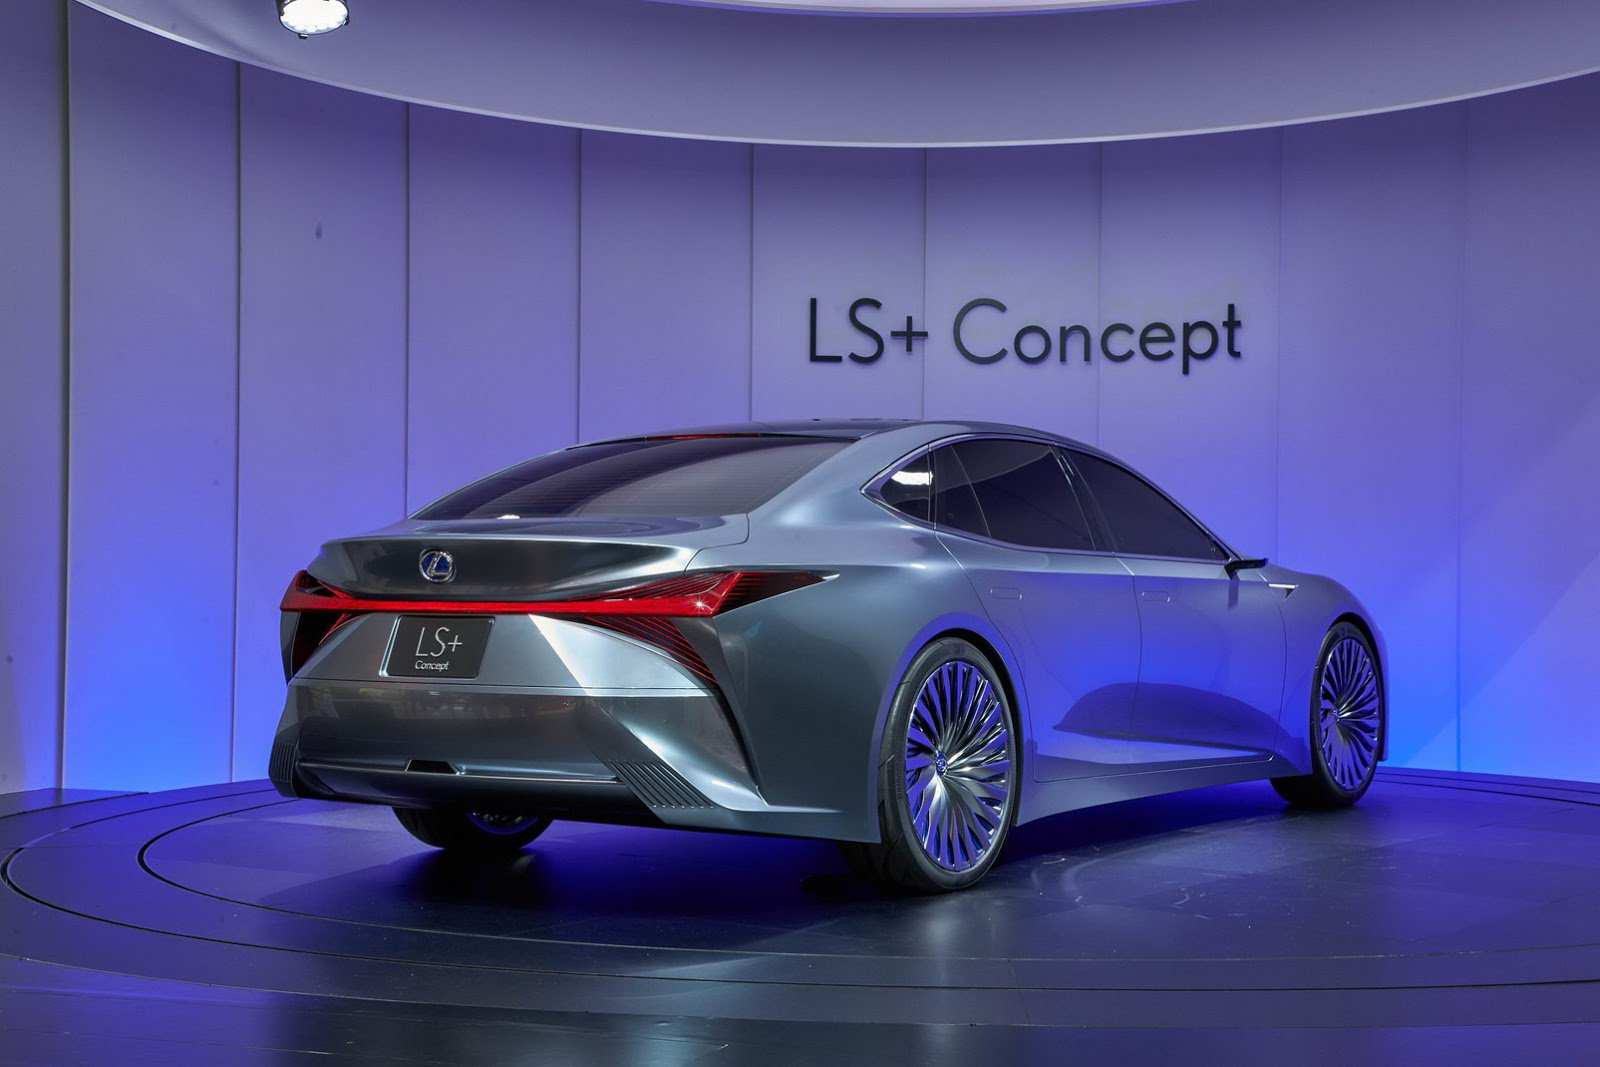 28 New Lexus Concept 2020 Pricing for Lexus Concept 2020